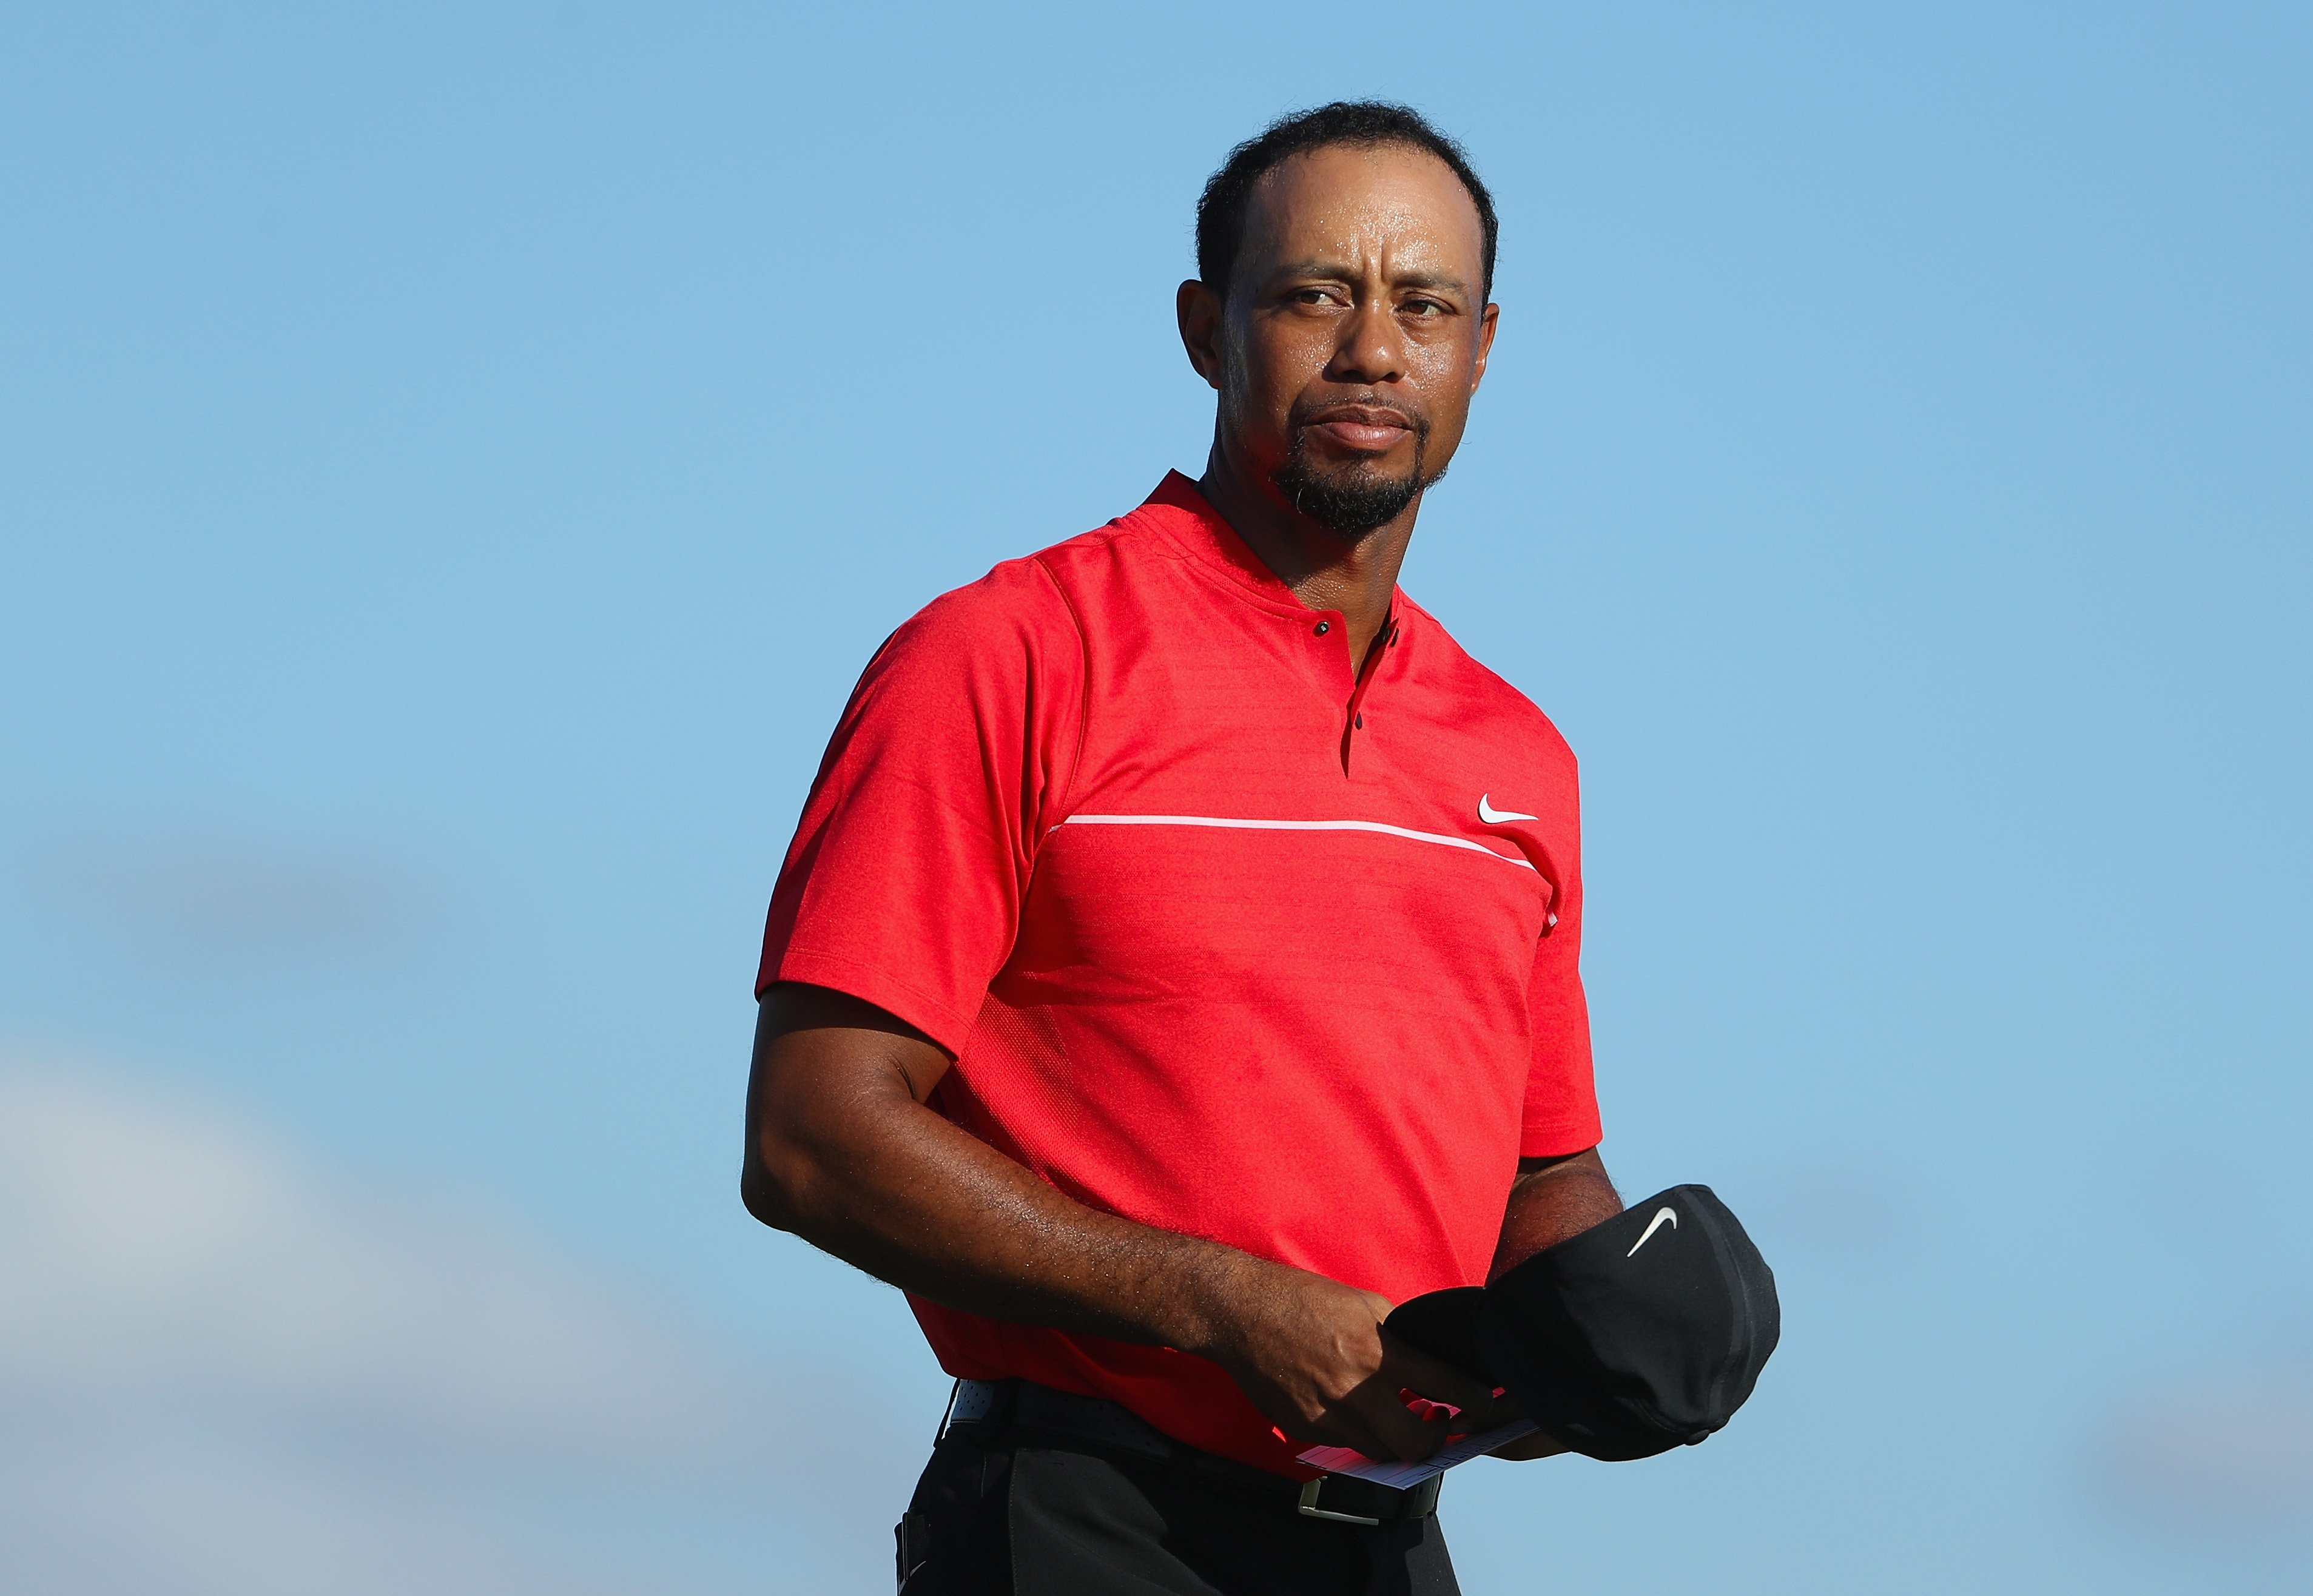 Tiger Woods during the final round of the Hero World Challenge at Albany. | Photo: GettyImages